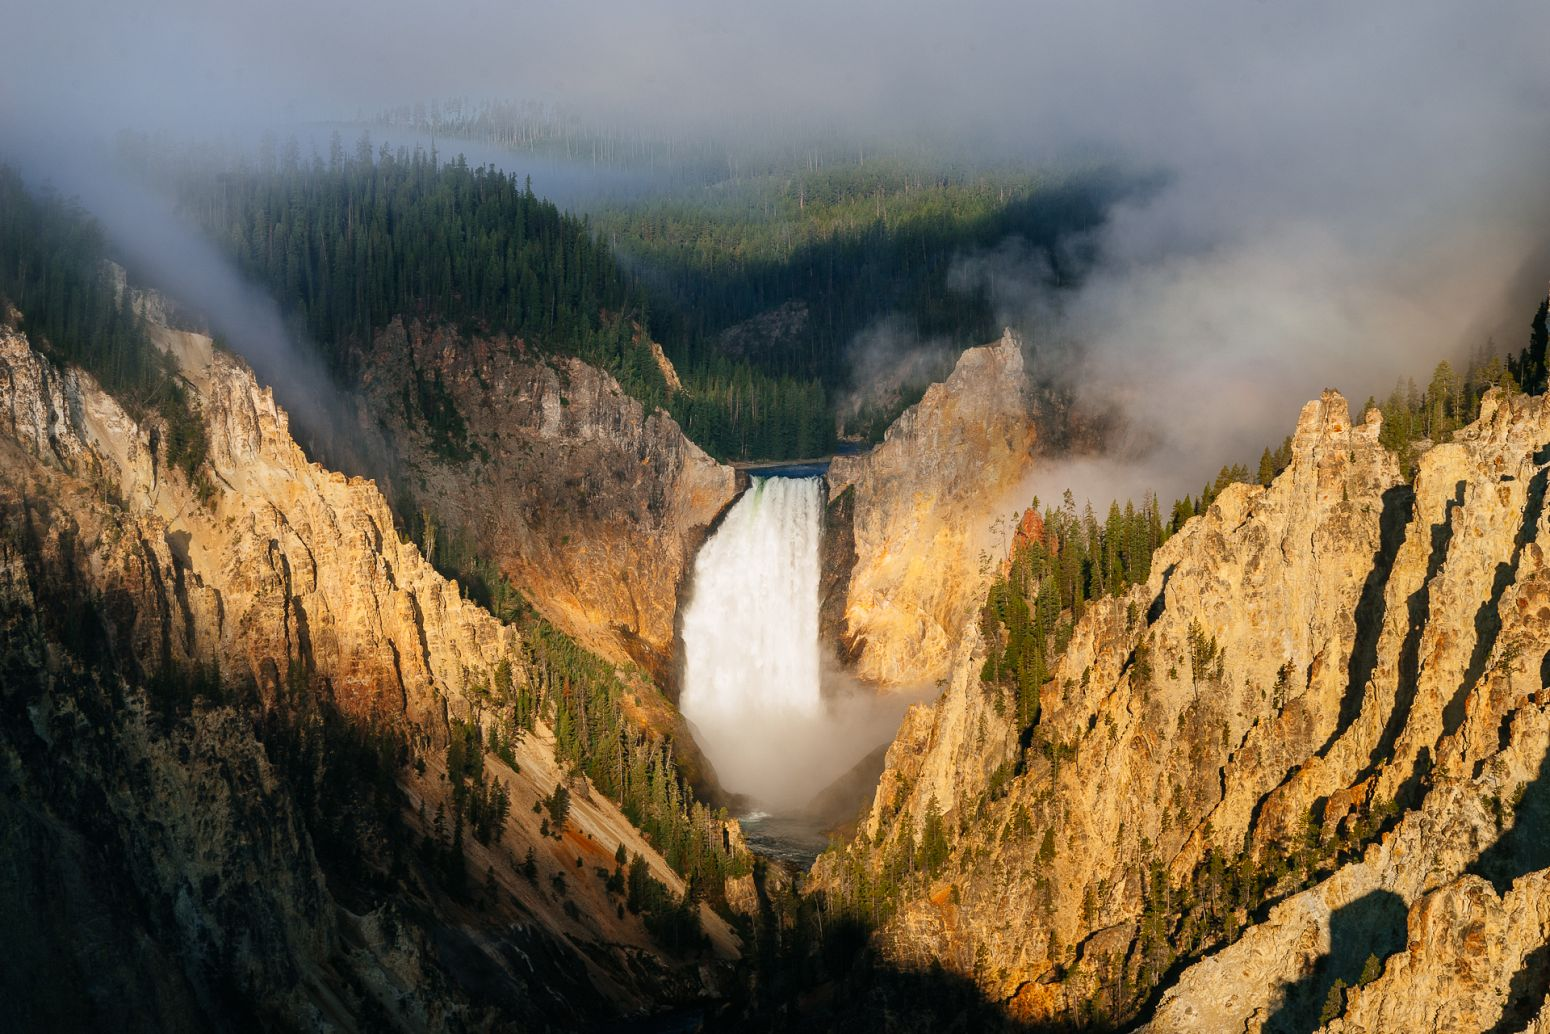 Grand Canyon of the Yellowstone, Yellowstone NP, Wyoming, USA